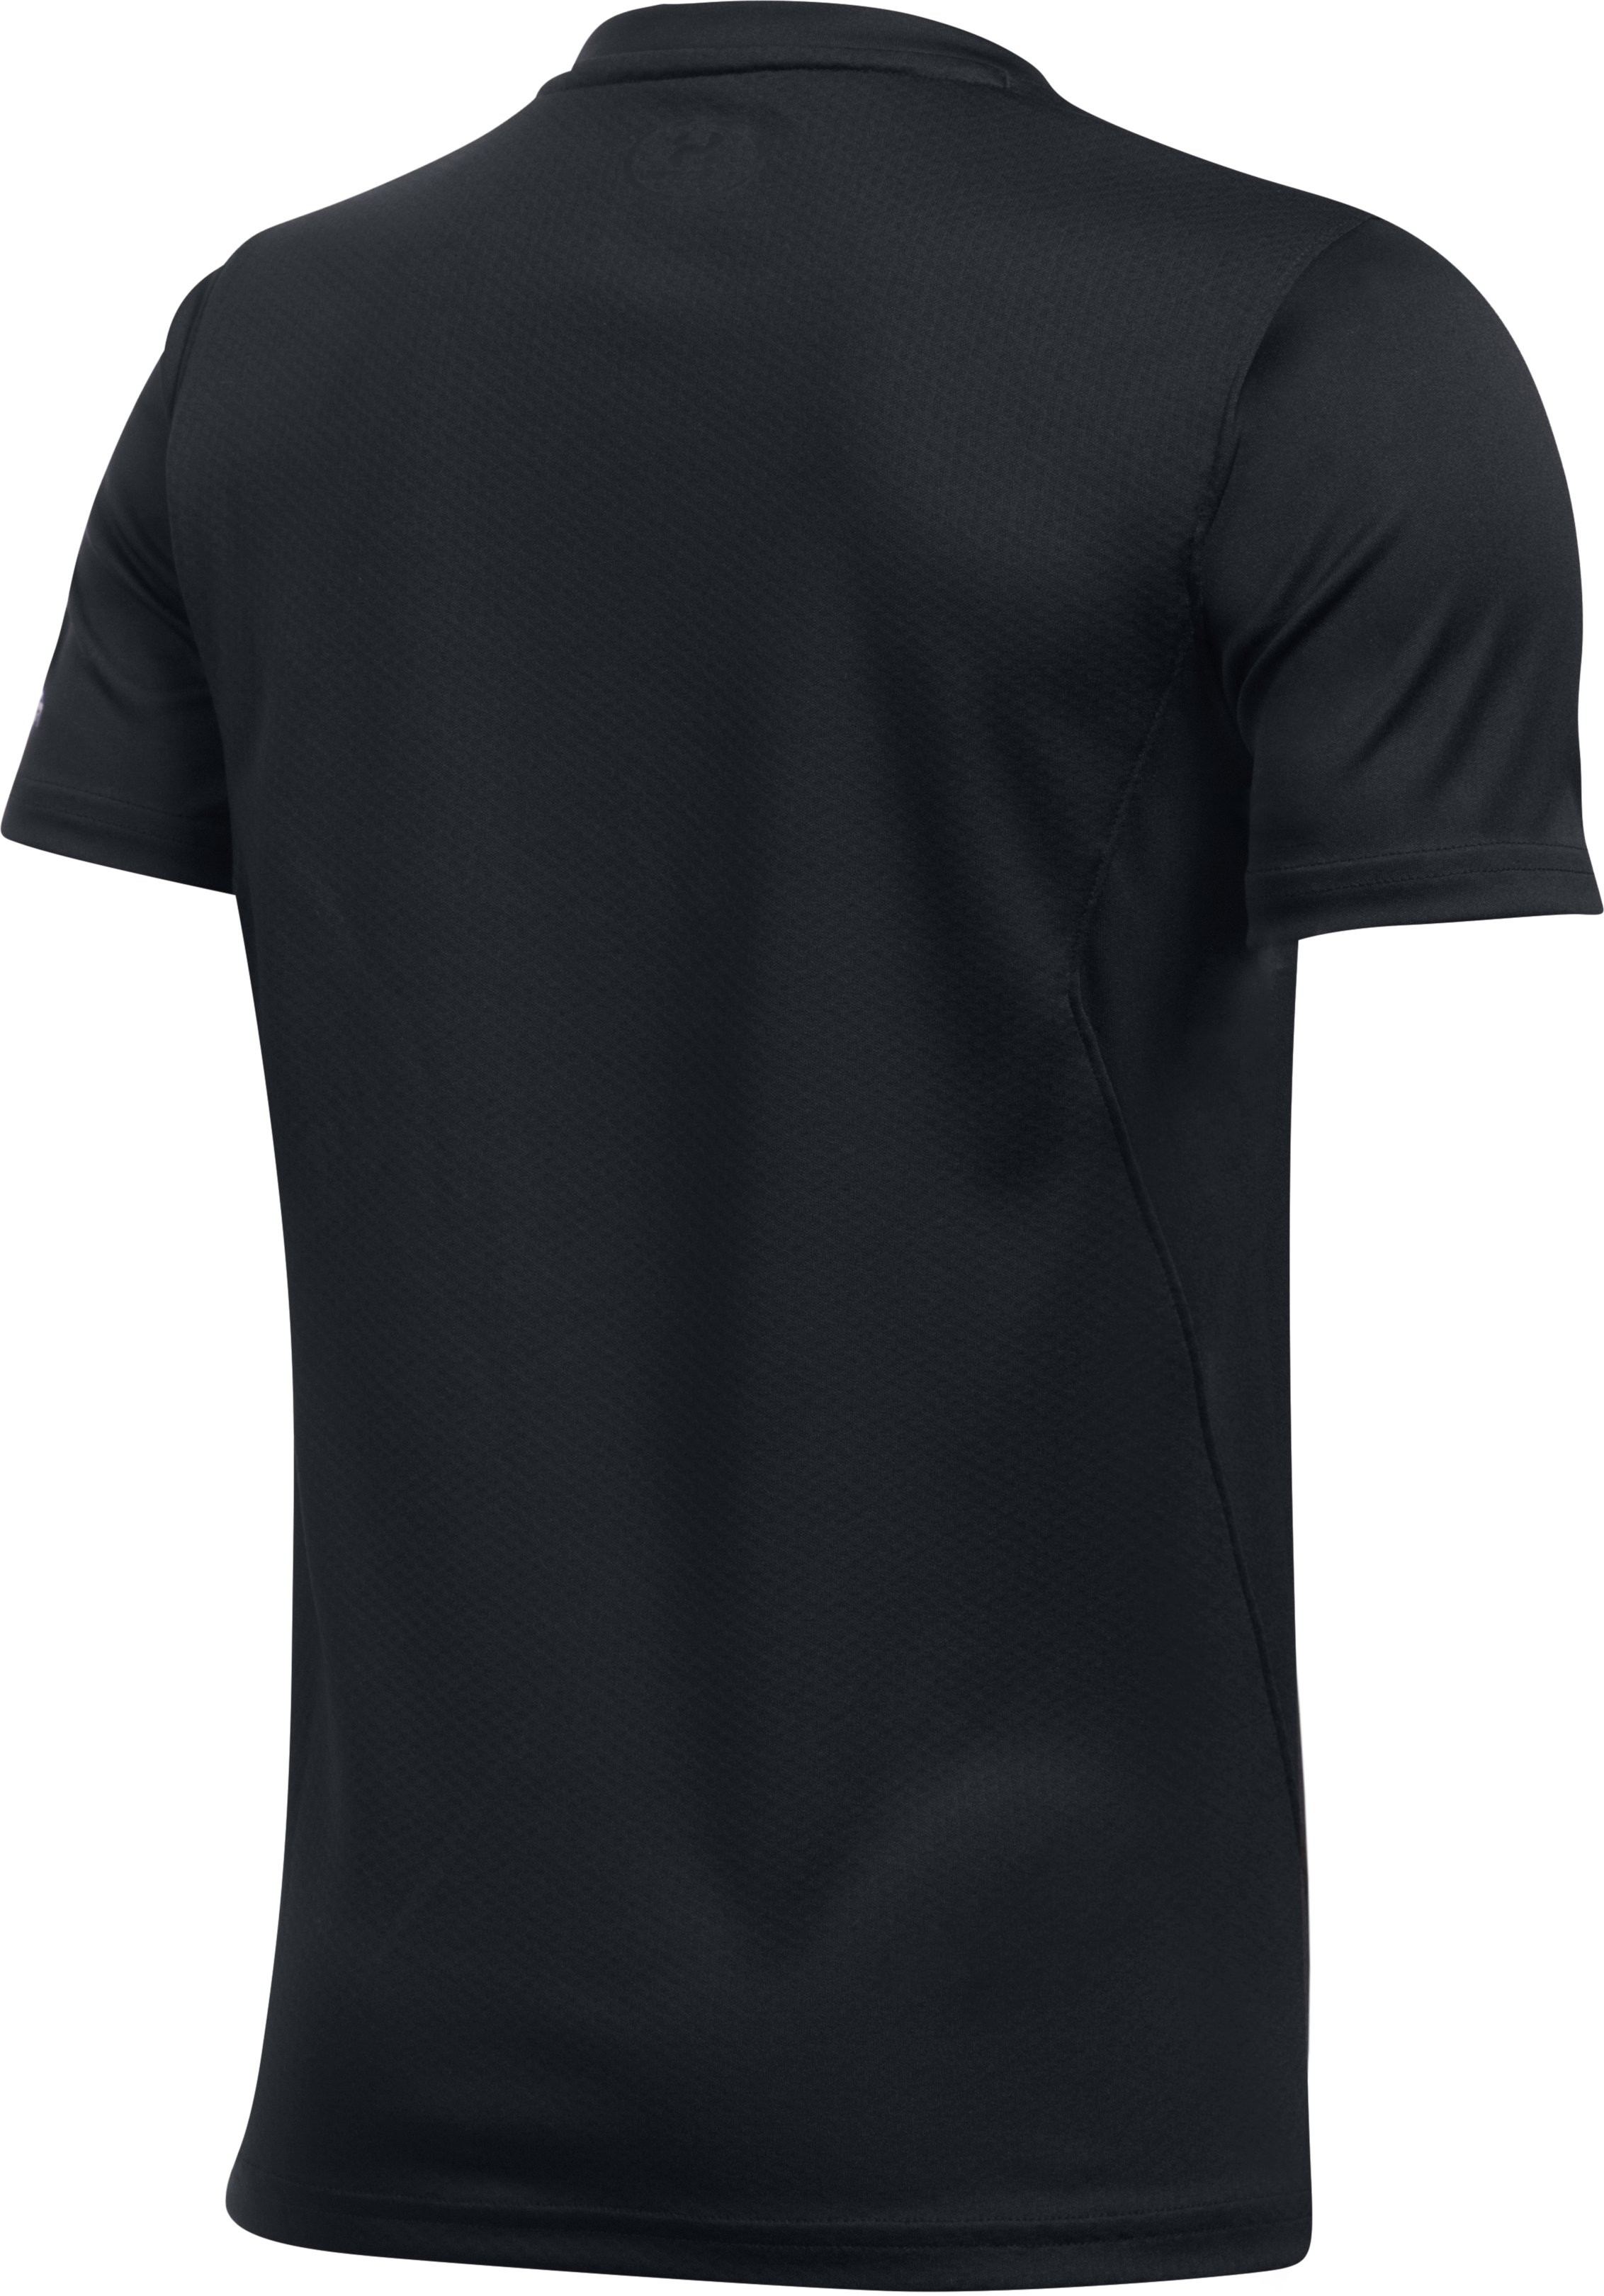 Kids' UA Challenger Training T-Shirt, Black , undefined